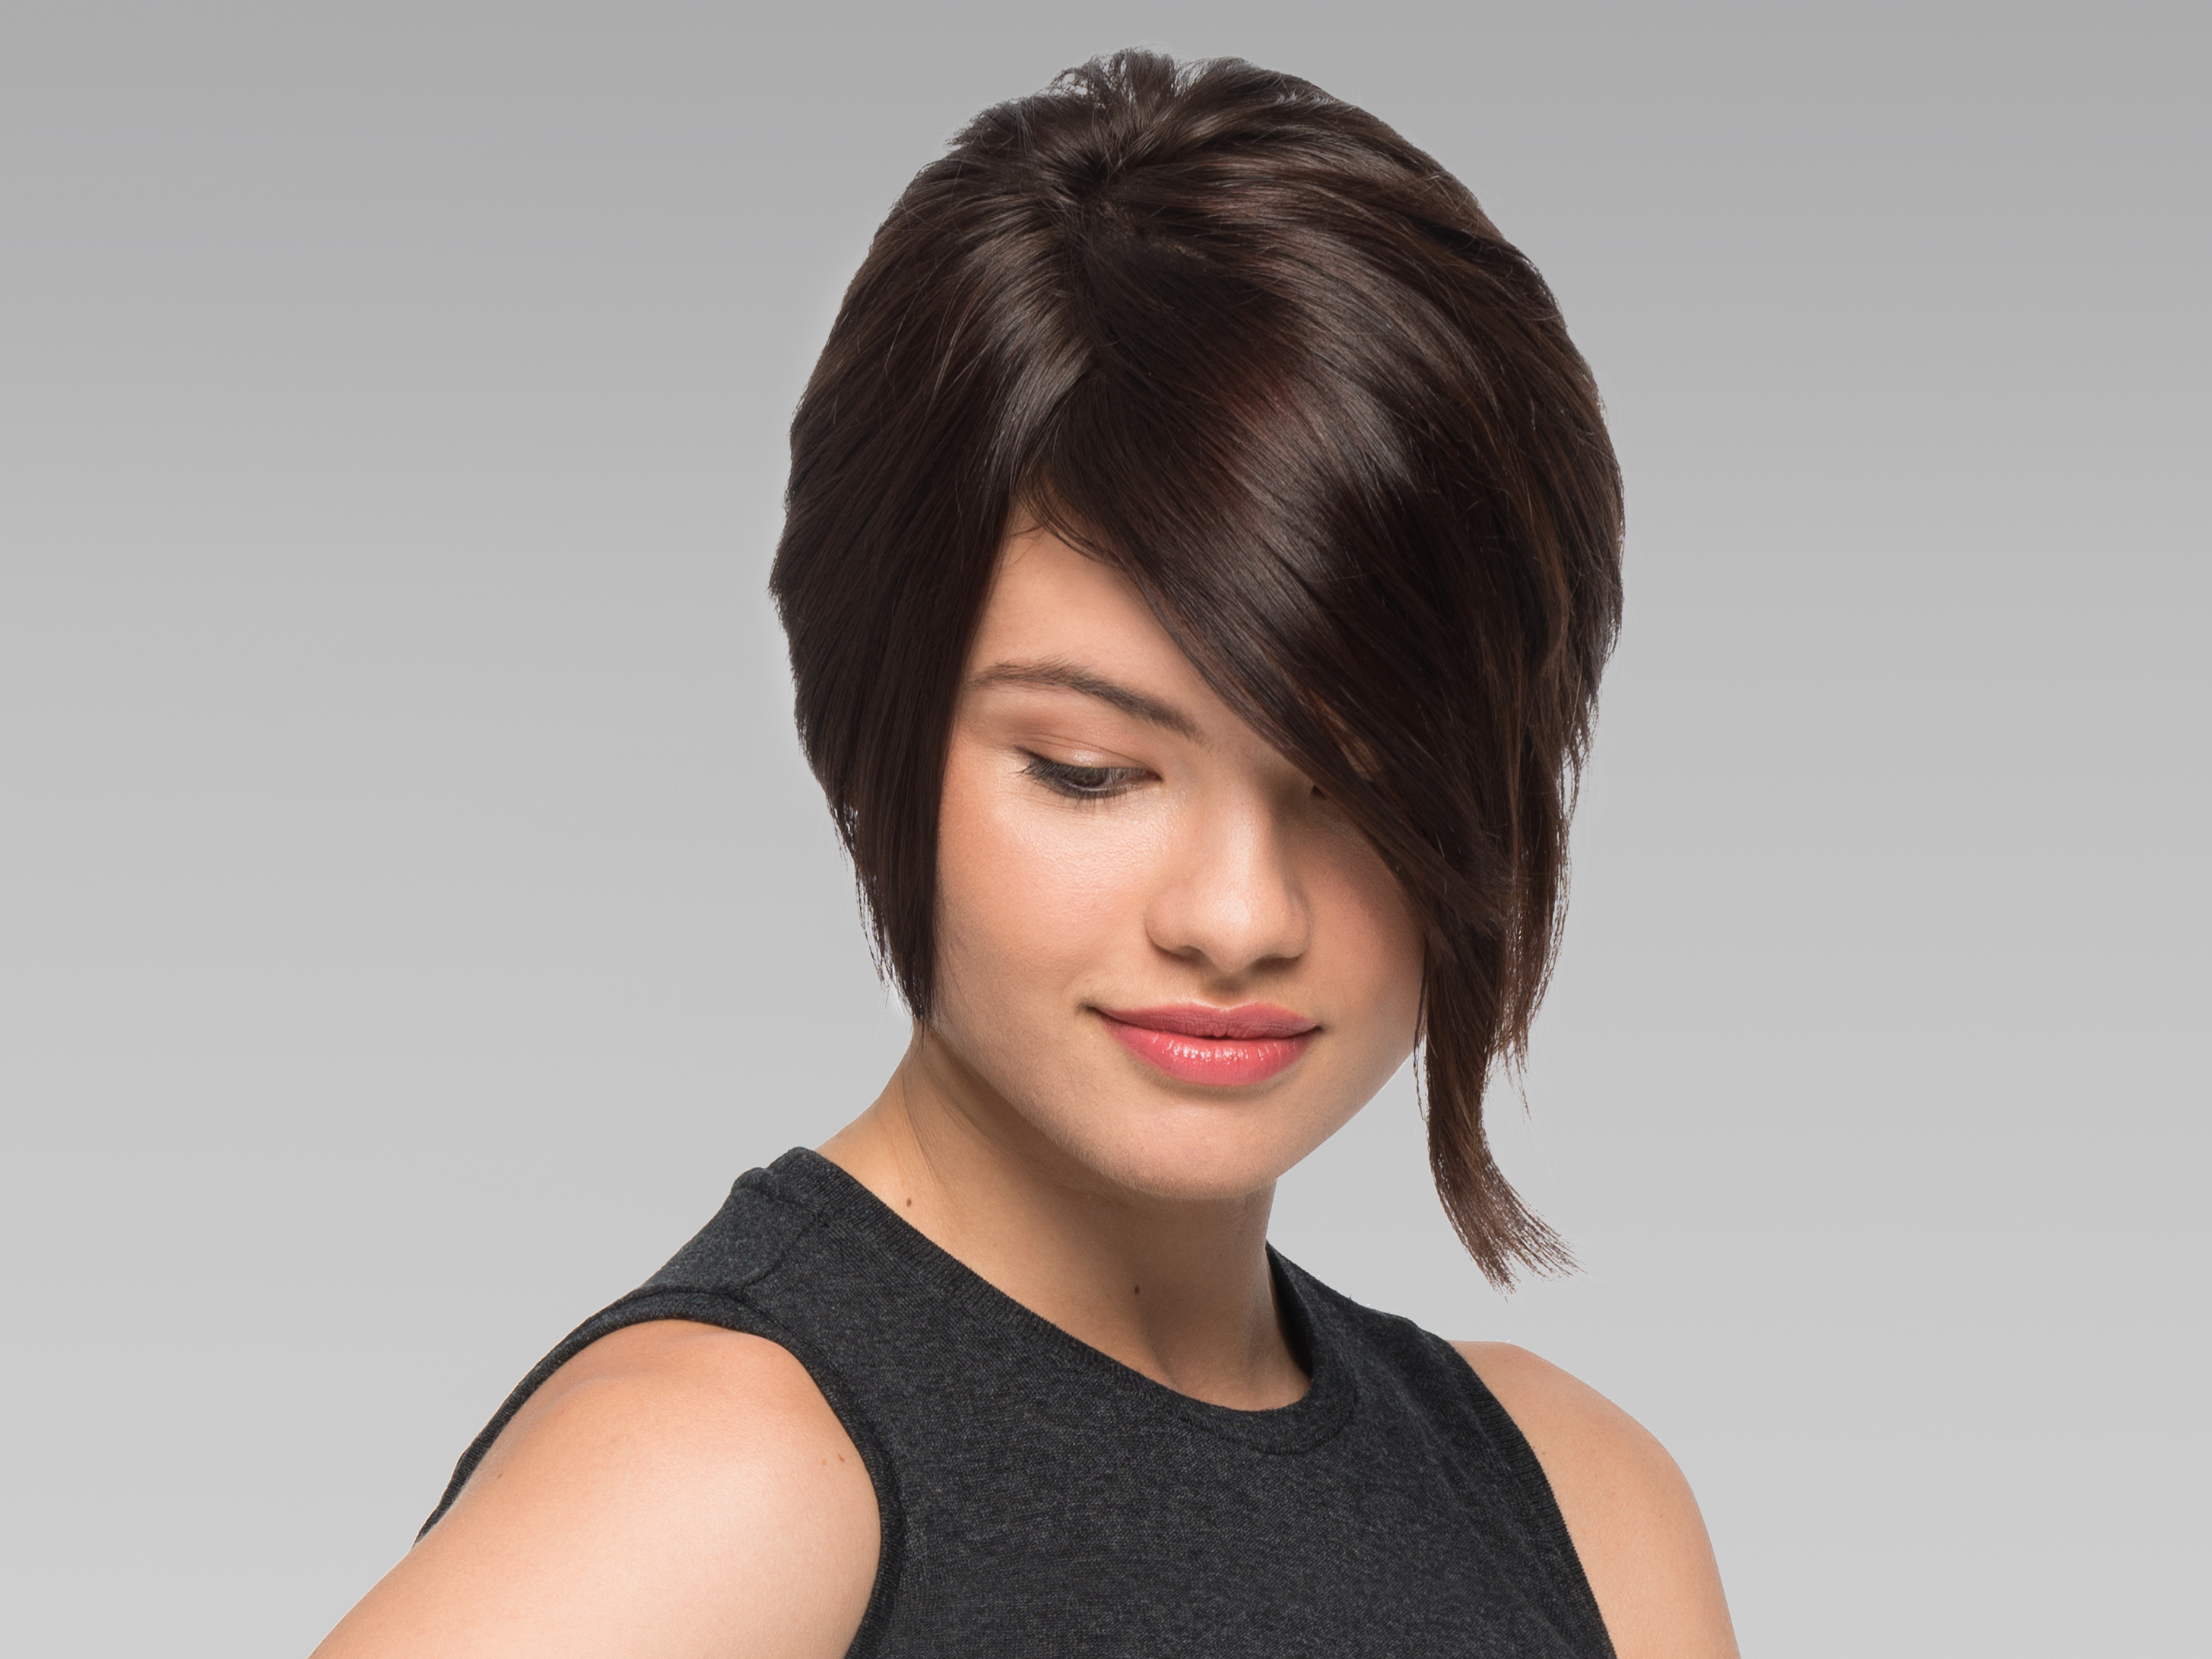 Women's Hairstyles | Supercuts Pertaining To Hairstyles For Long Hair With Short Layers (View 24 of 25)